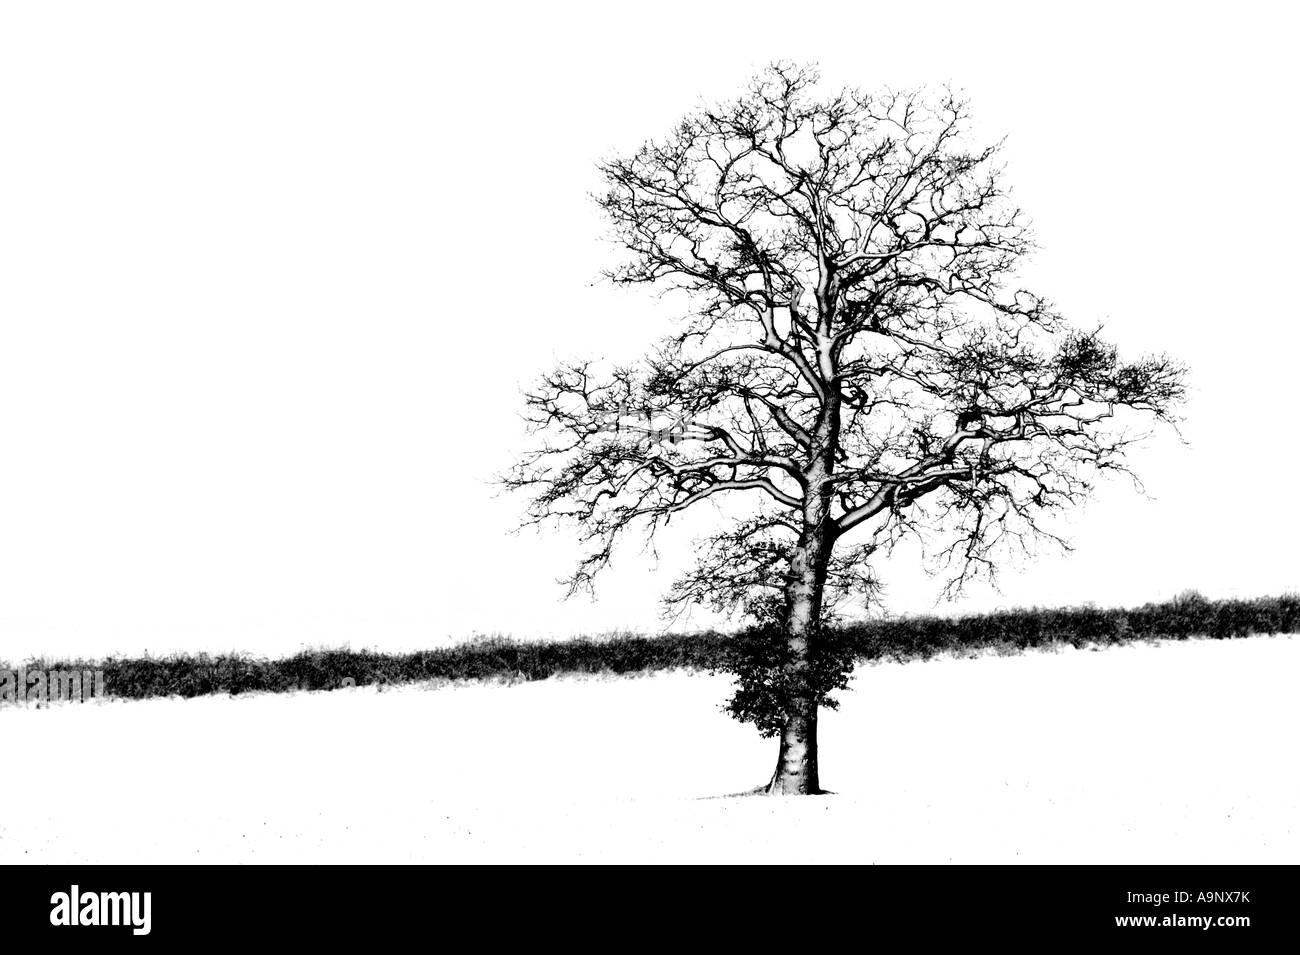 A black and white photograph of an oak tree standing in field covered in snow during blizzard - Stock Image